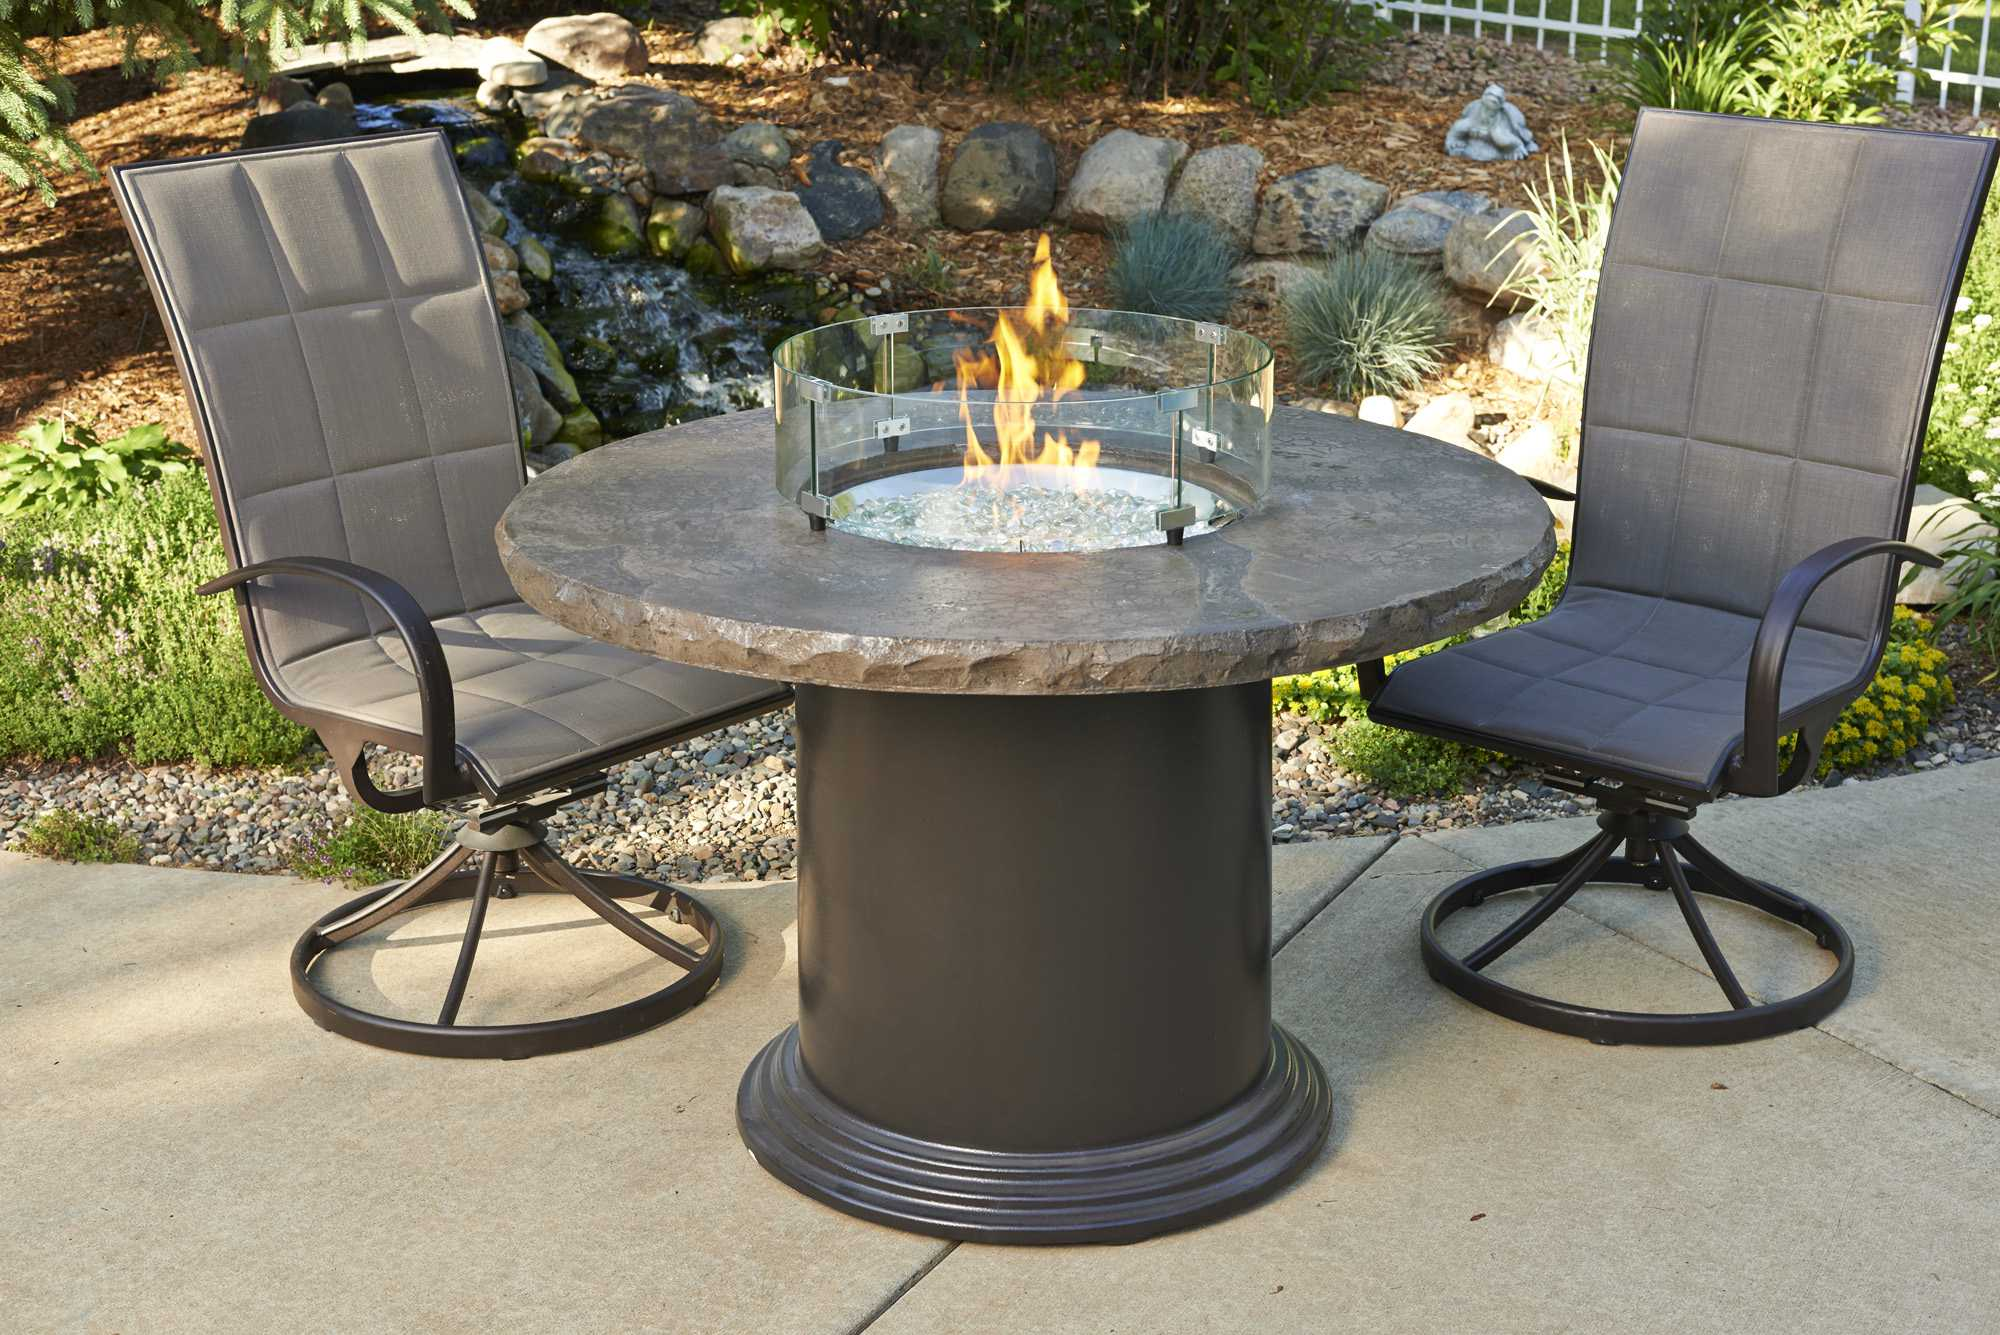 outdoor greatroom colonial fiberglass 48 round fire pit chat table with marbleized noche top. Black Bedroom Furniture Sets. Home Design Ideas